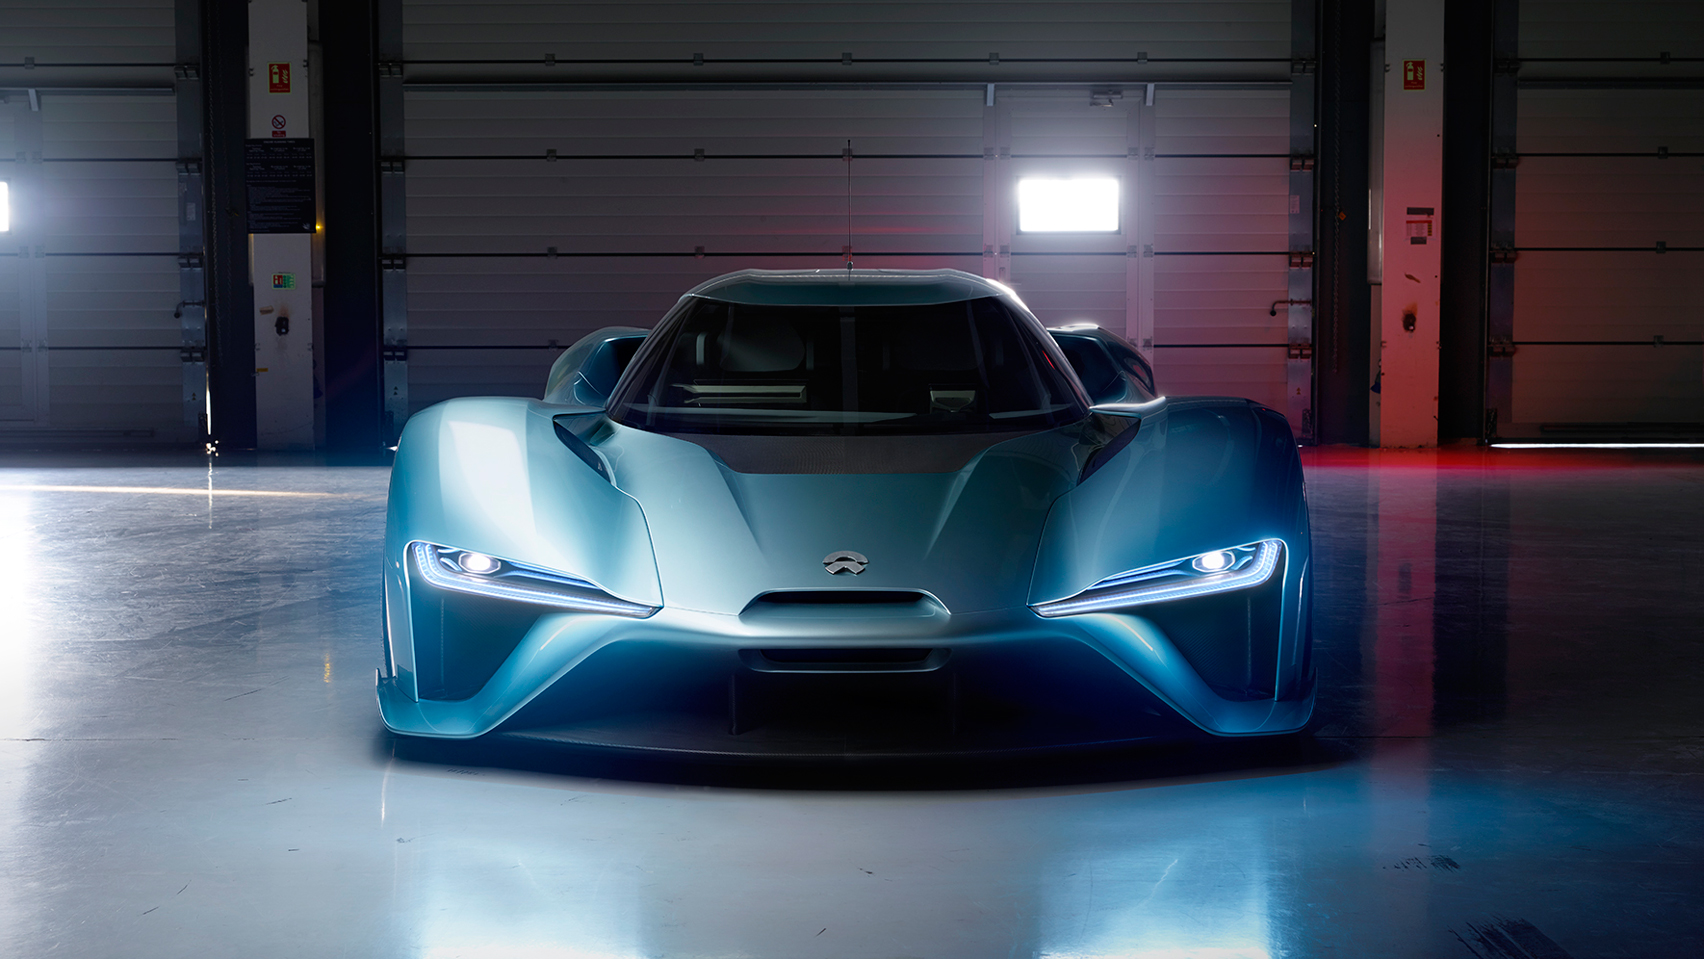 The worlds fastest electric car - The Worlds Fastest Electric Car 16